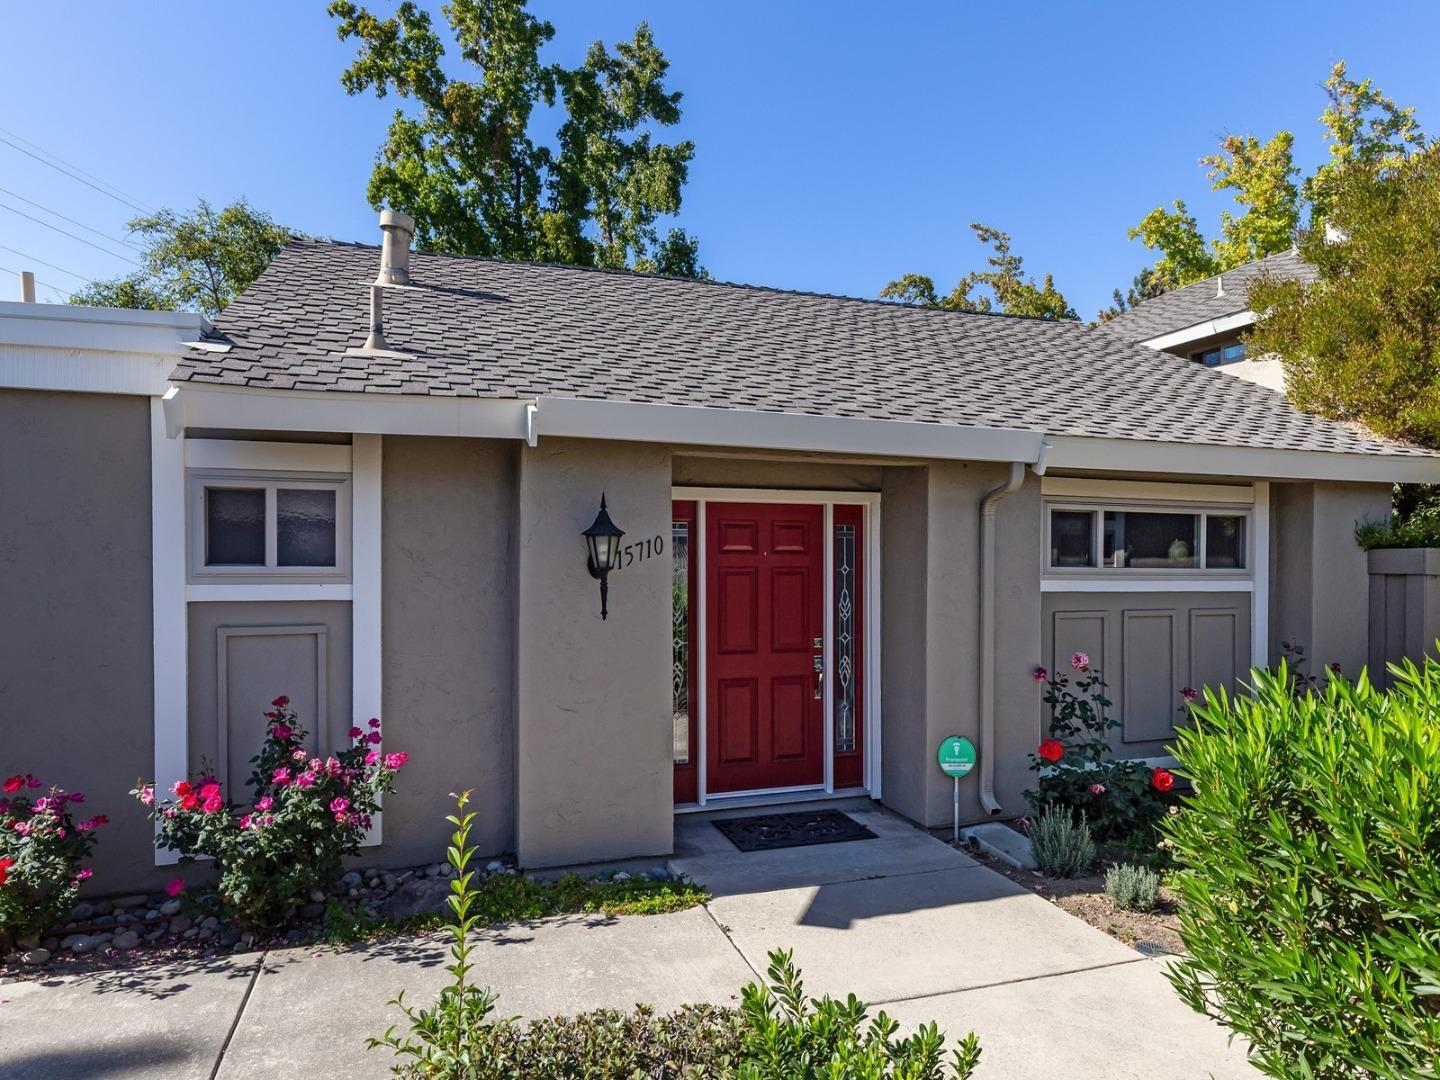 Welcome to one of the most beautiful single level townhomes in Los Gatos!  Exquisitely redone in 2015! Well-configured kitchen, newer brushed stainless appliances, Quartz countertops, Carrera marble backsplash, and large picture window. Living room with vaulted ceilings and dining area, both with warm, natural light from the expansive patio with huge double glass sliders! Two full baths appointed with Quartz countertops, beautiful Carrera marble showers, beveled glass doors. Large master suite includes built-in organizers and sliding doors to the private, landscaped patio. Modern office doubles as a guest room with built-in wall bed unit. All new doors and double paned windows with exquisite French White Oak hardwood floors throughout, Pergola and pavers enhance the oversized, private patio.    Former model home and end unit with attached 2 car garage a park-like setting community pool, and convenient location, close to everything Los Gatos has to offer.  You will love it!